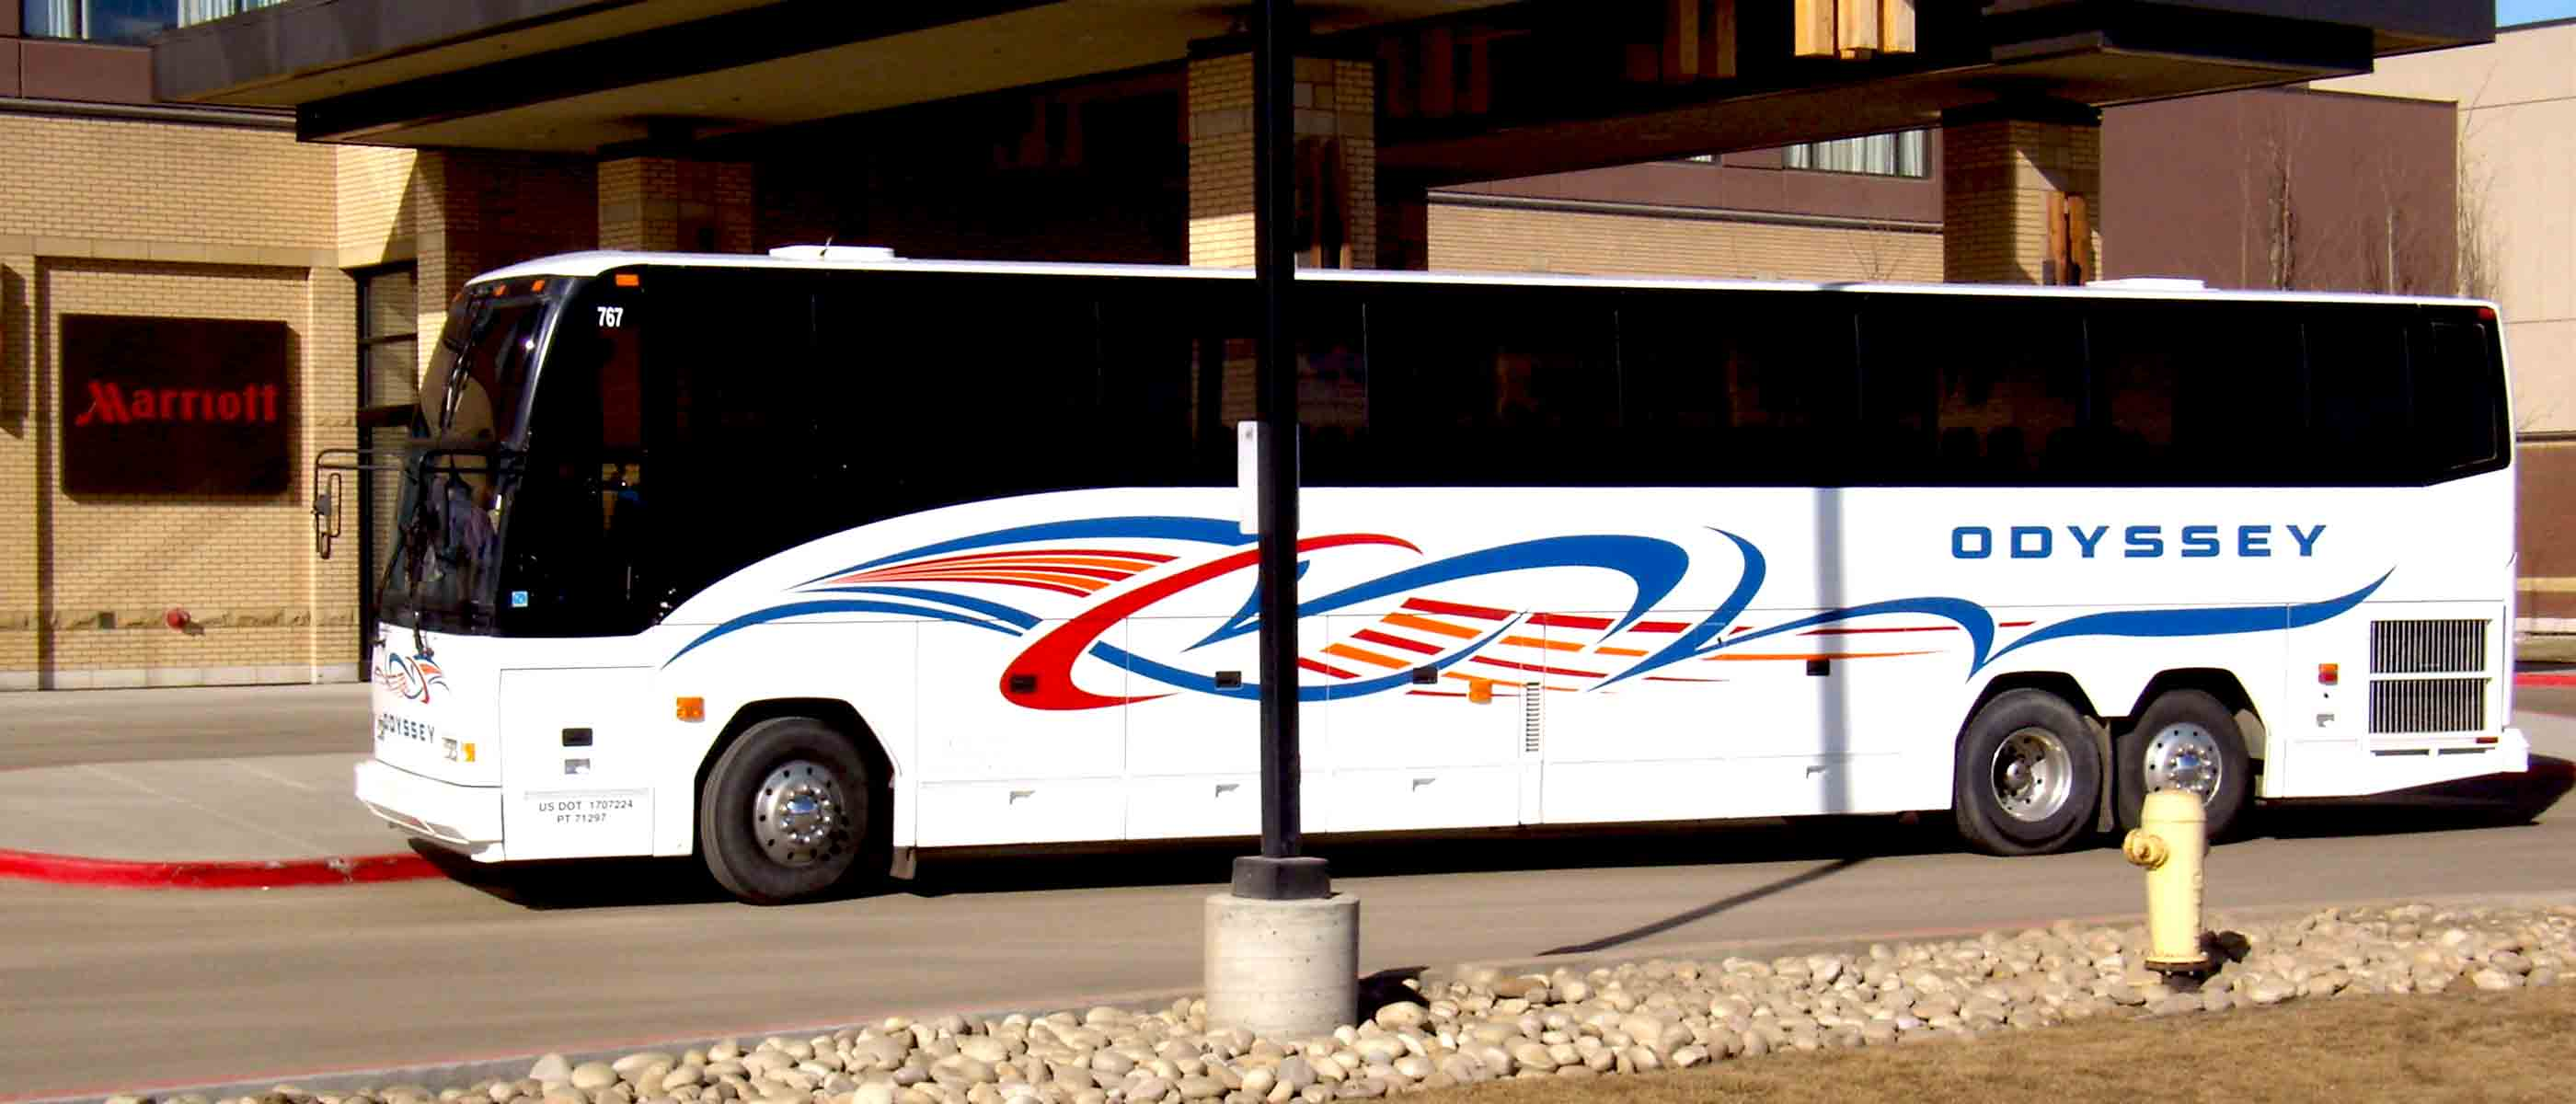 Saskatchewan Bus Charter and Tour Company - Odyssey Coach Lines